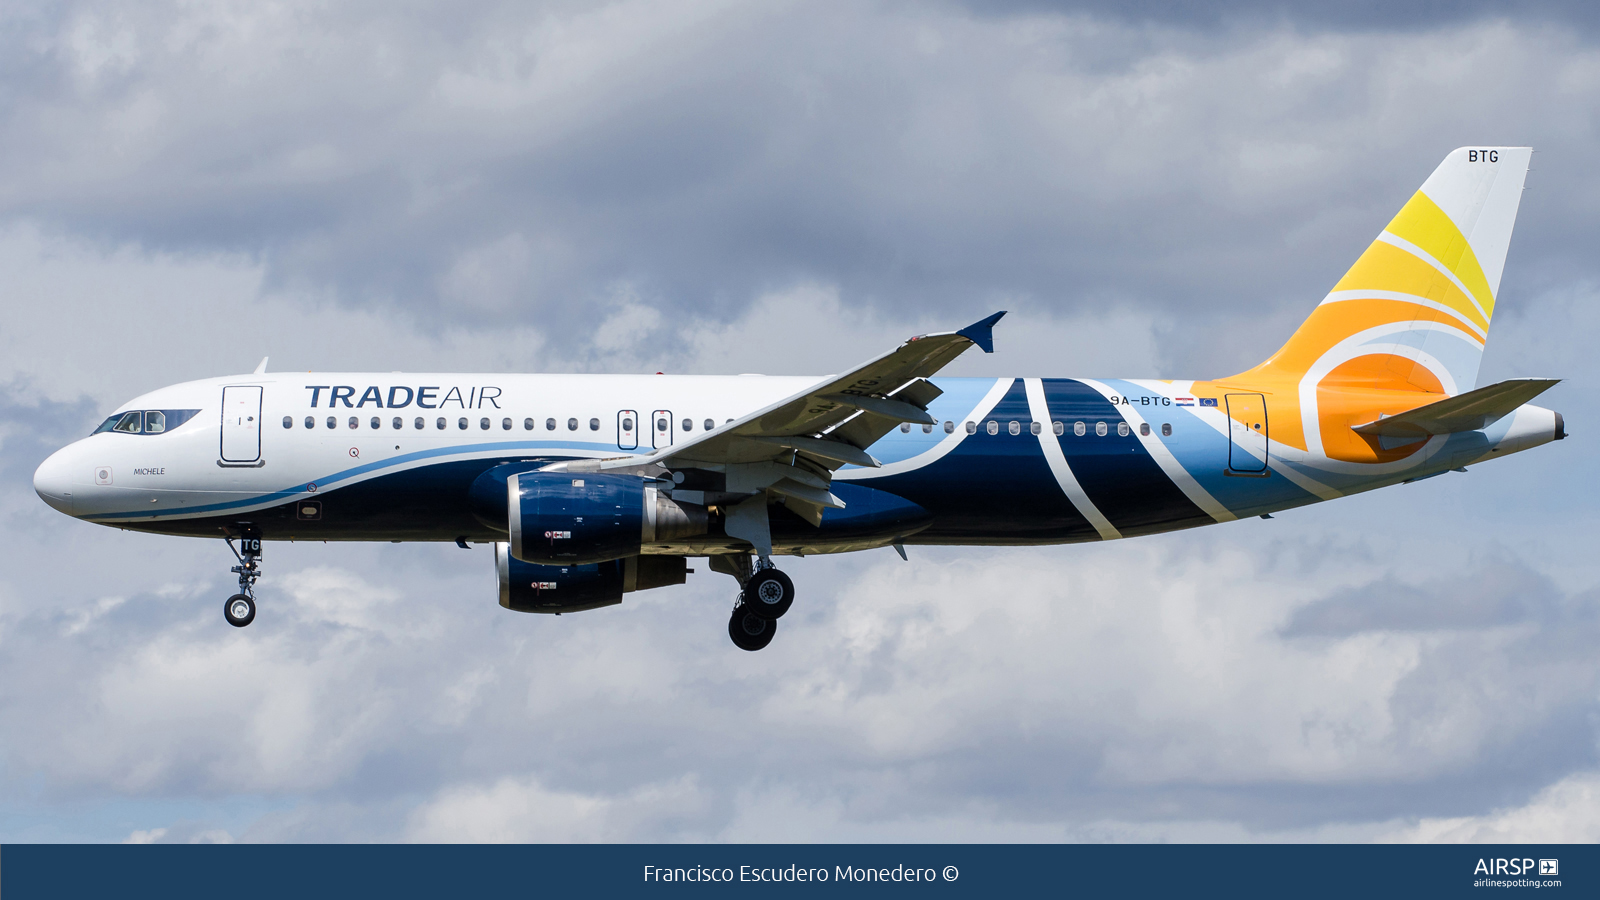 Trade Air  Airbus A320  9A-BTG